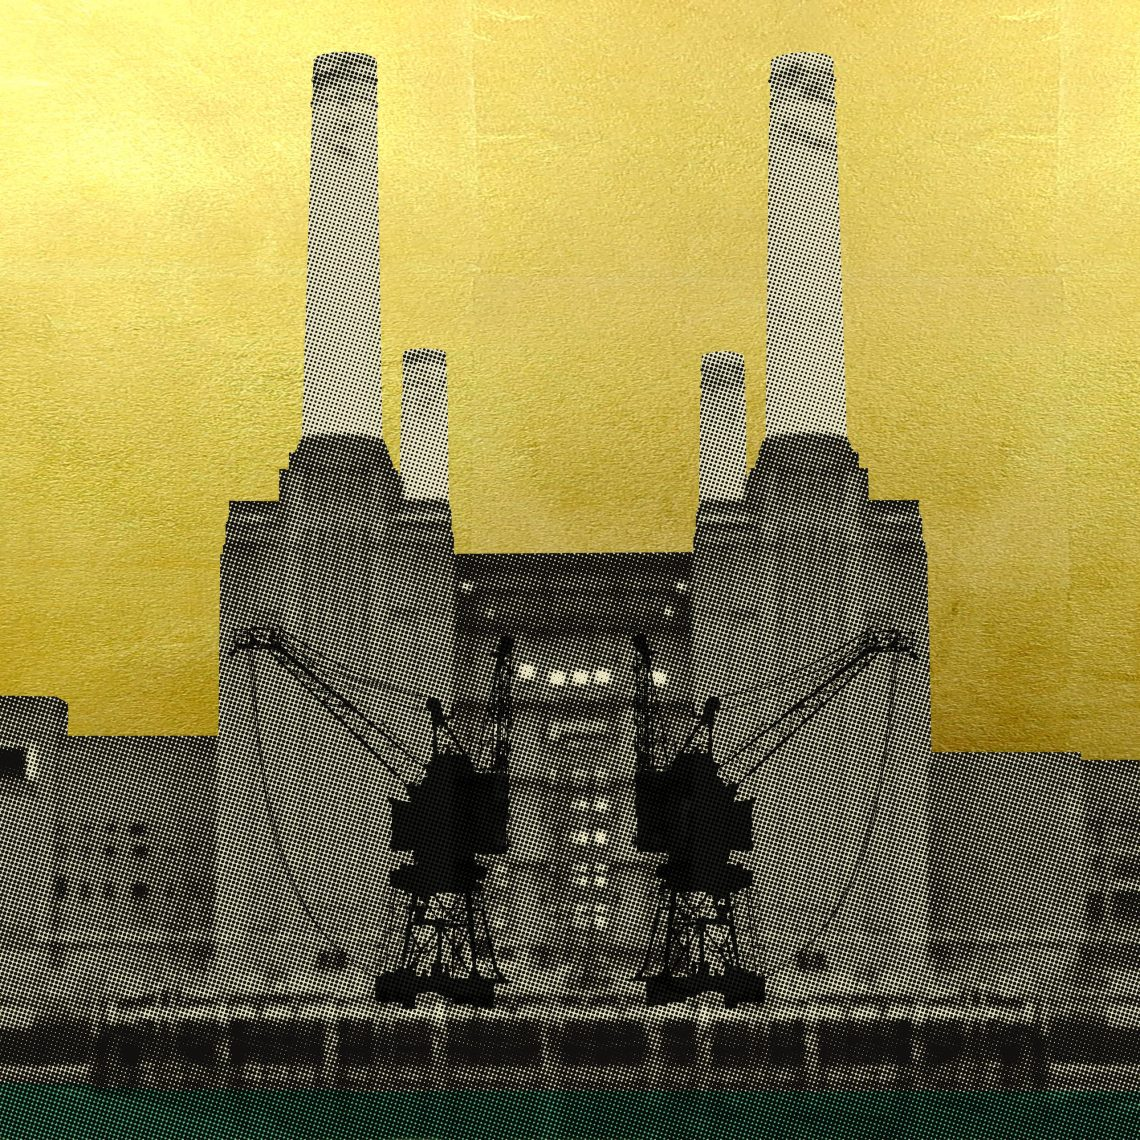 Battersea Power Station VIS